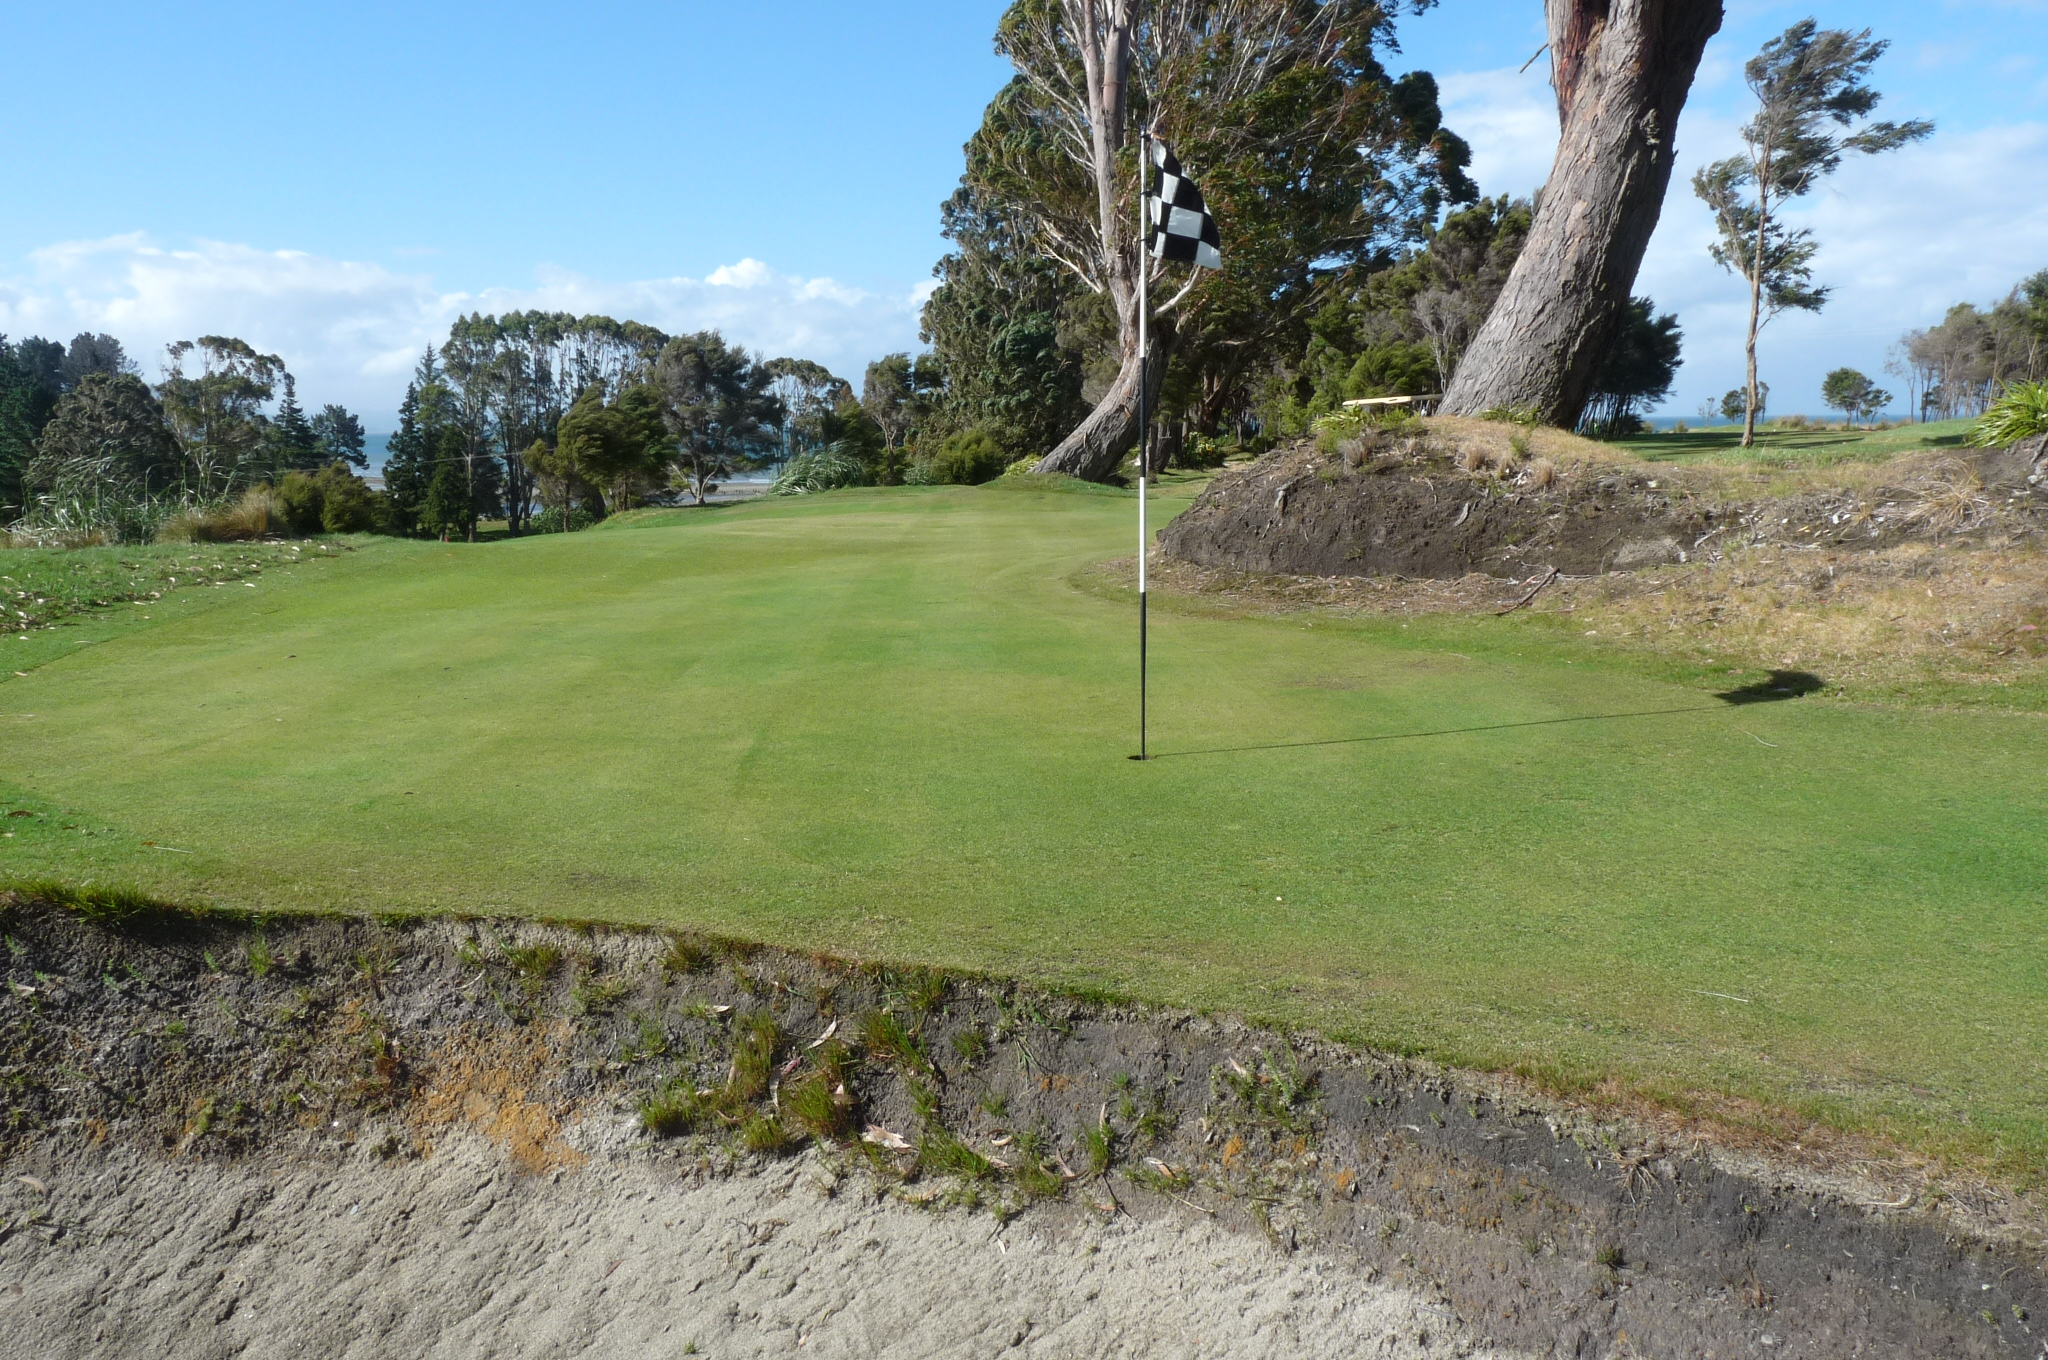 Typical tucked away pin position